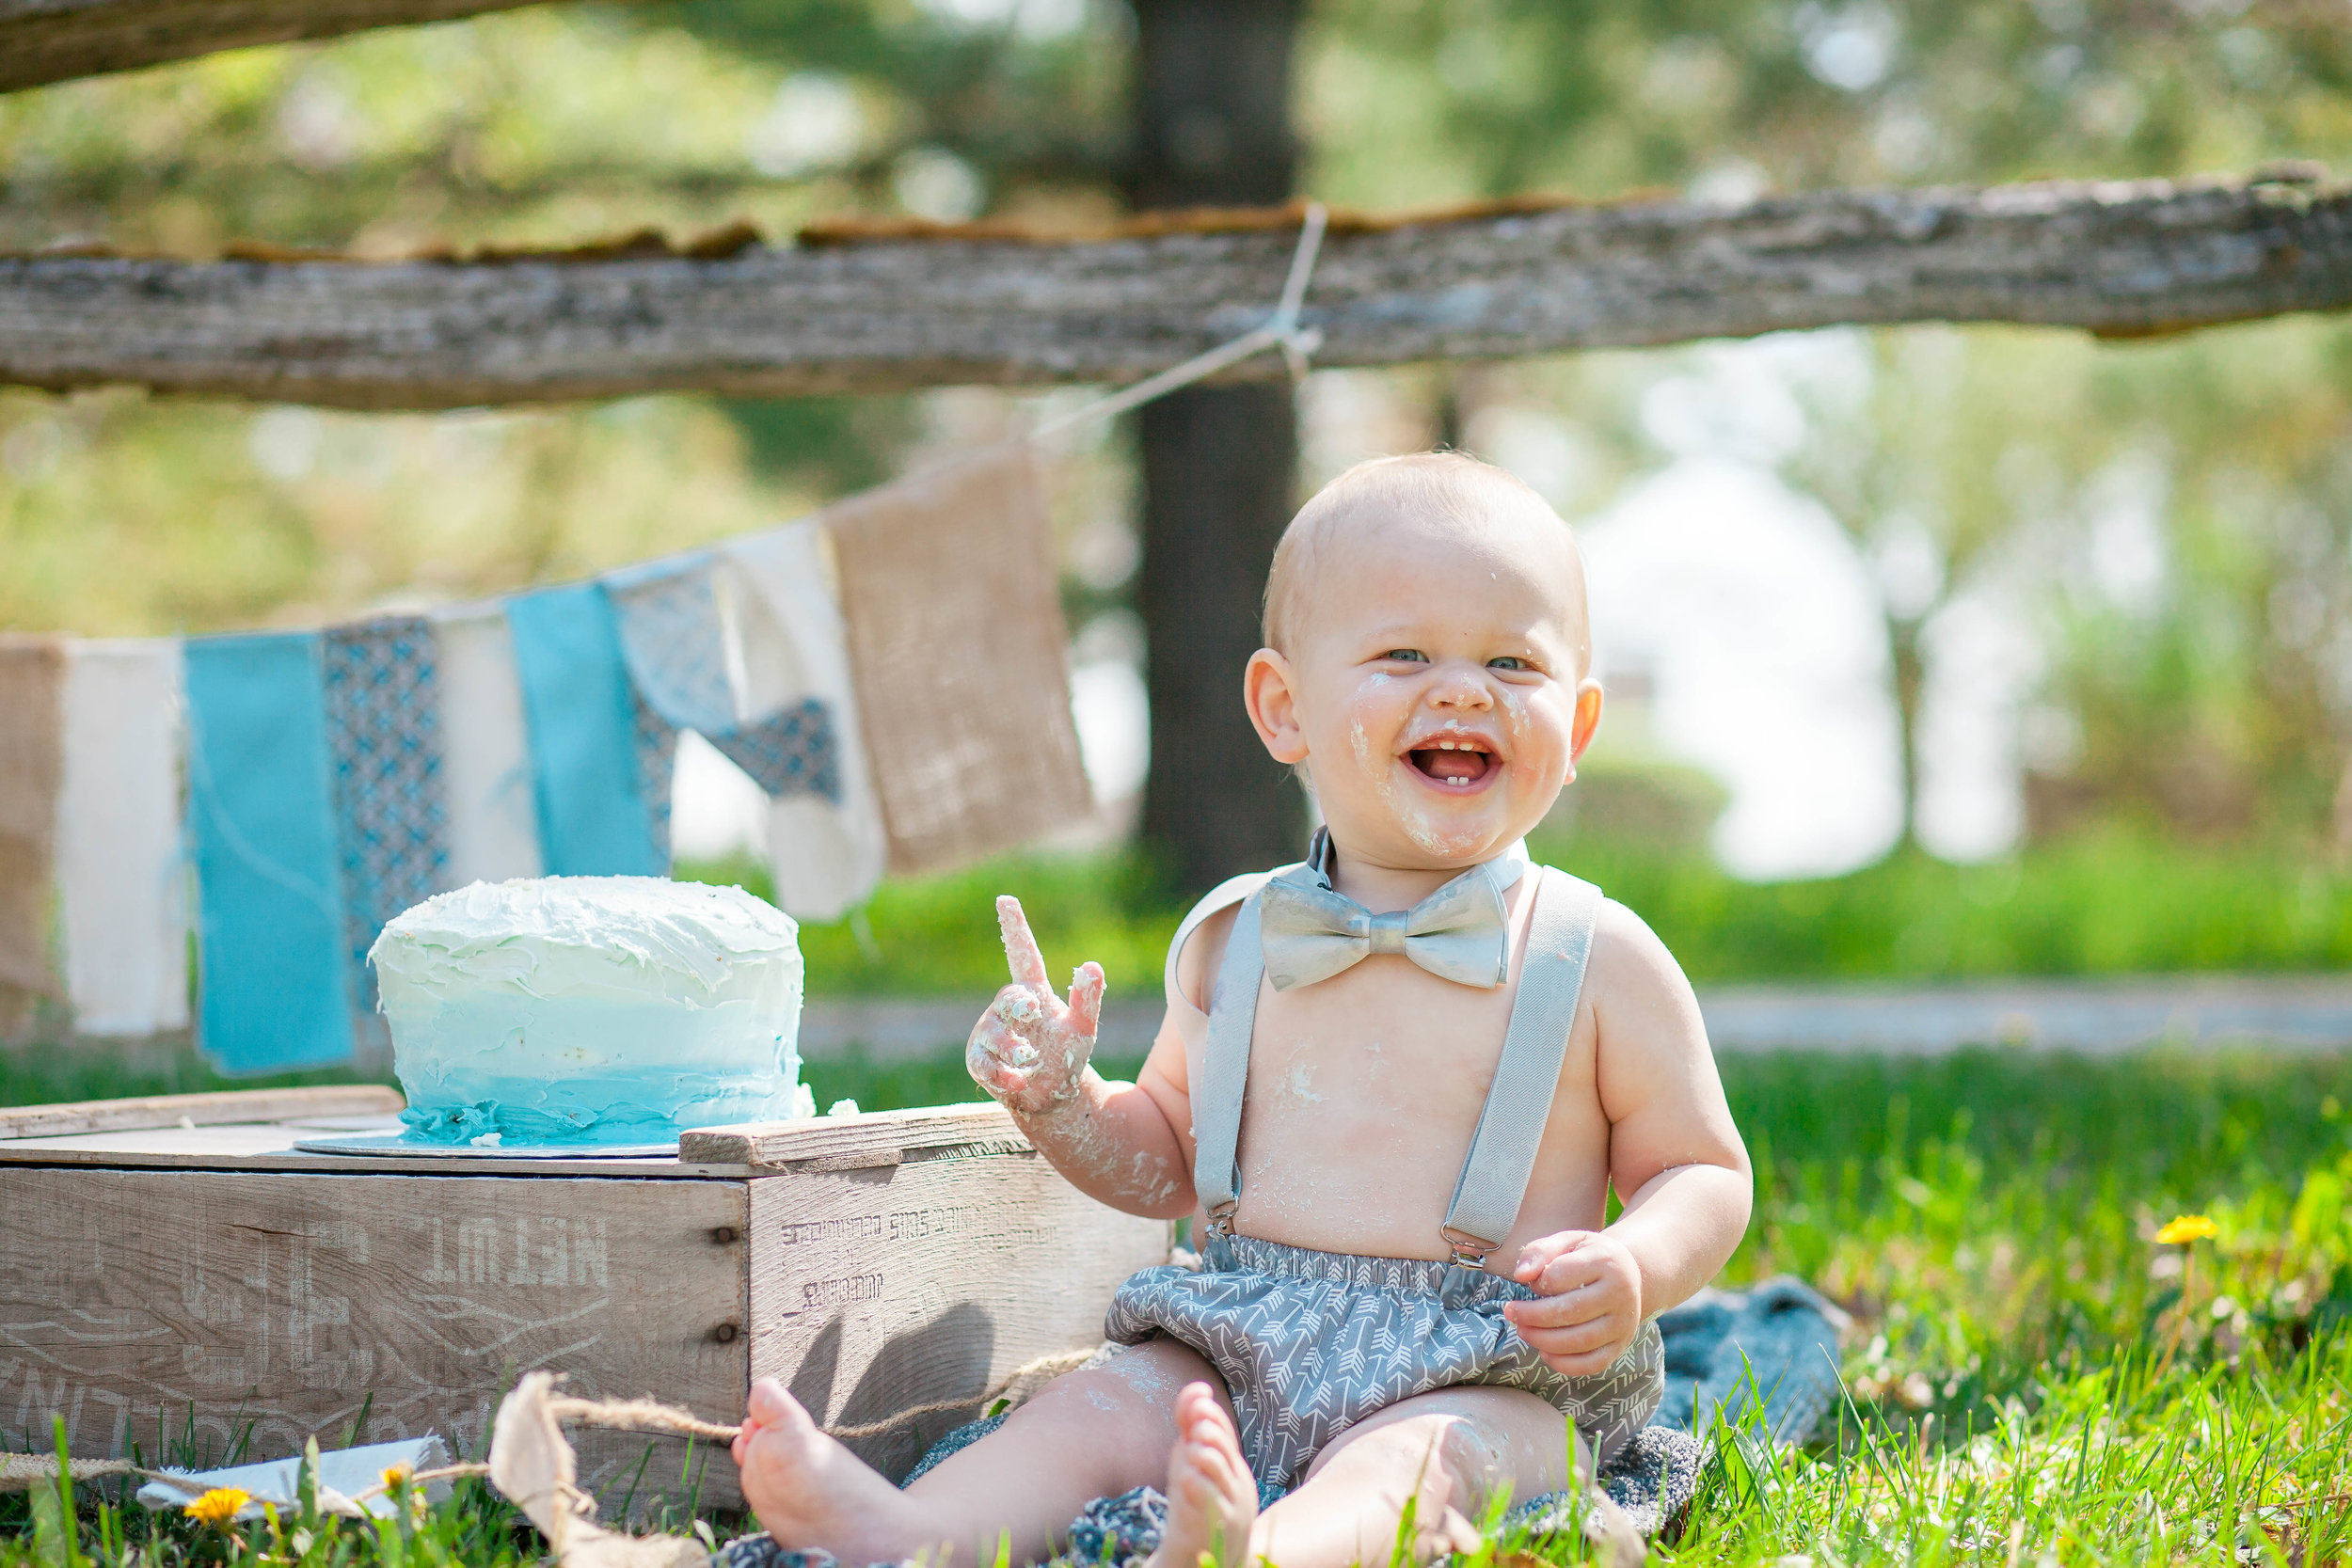 Amy D Photography- Cake Smash- Outdoor Cake Smash- Boys Cake Smash- Outdoor Boys Cake Smash- First Birthday Photos- Family Photography- Children Photography (18 of 67).jpg